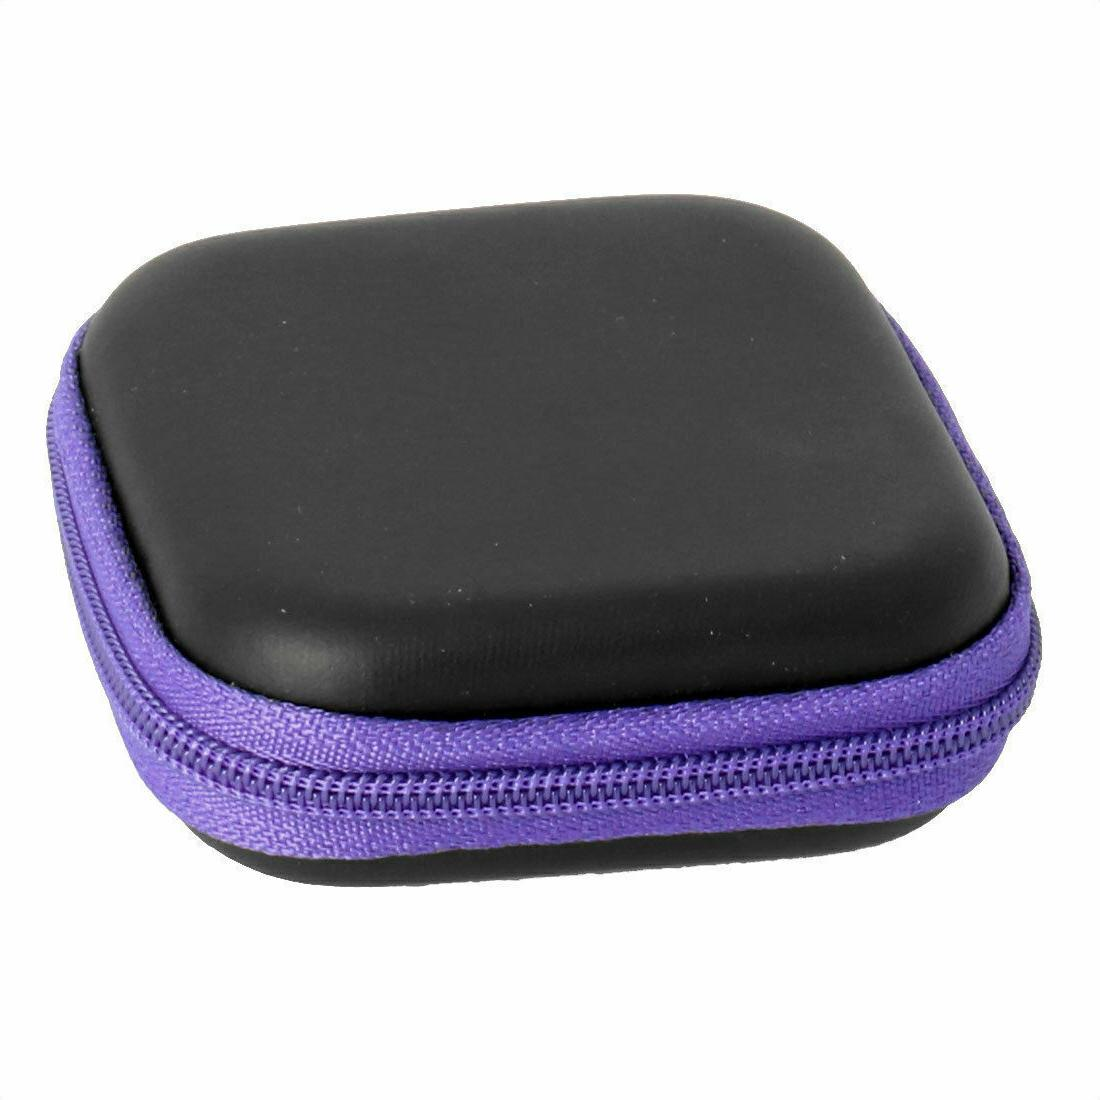 Cellphone Earbuds Carrying Cases Bags Pouch